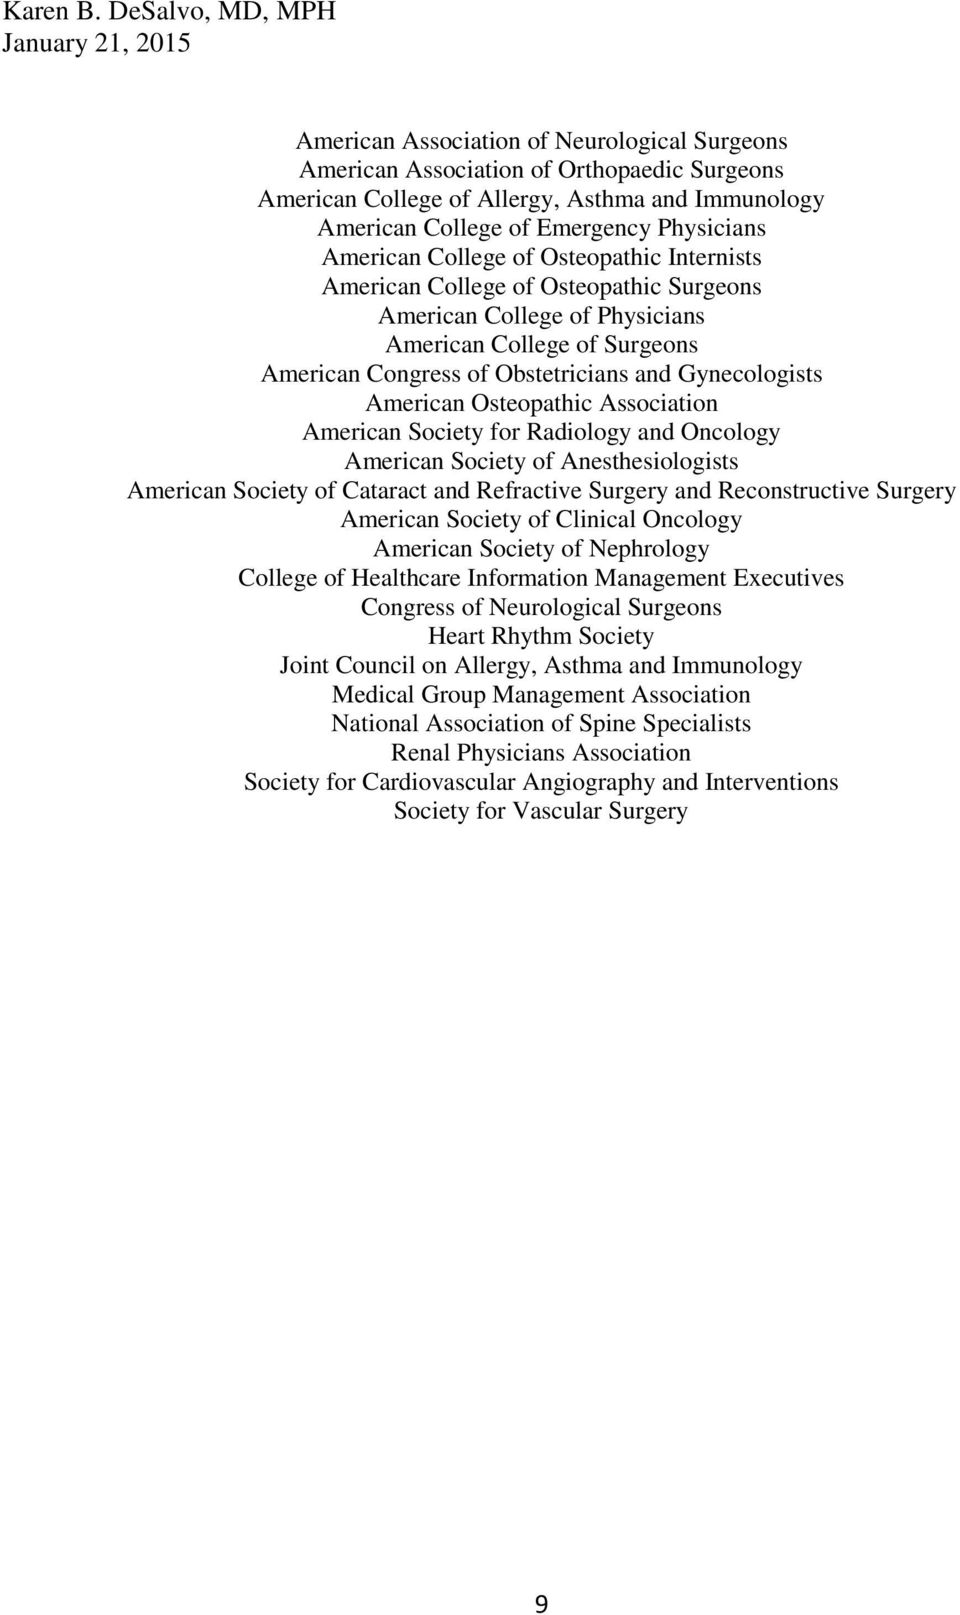 Osteopathic Association American Society for Radiology and Oncology American Society of Anesthesiologists American Society of Cataract and Refractive Surgery and Reconstructive Surgery American